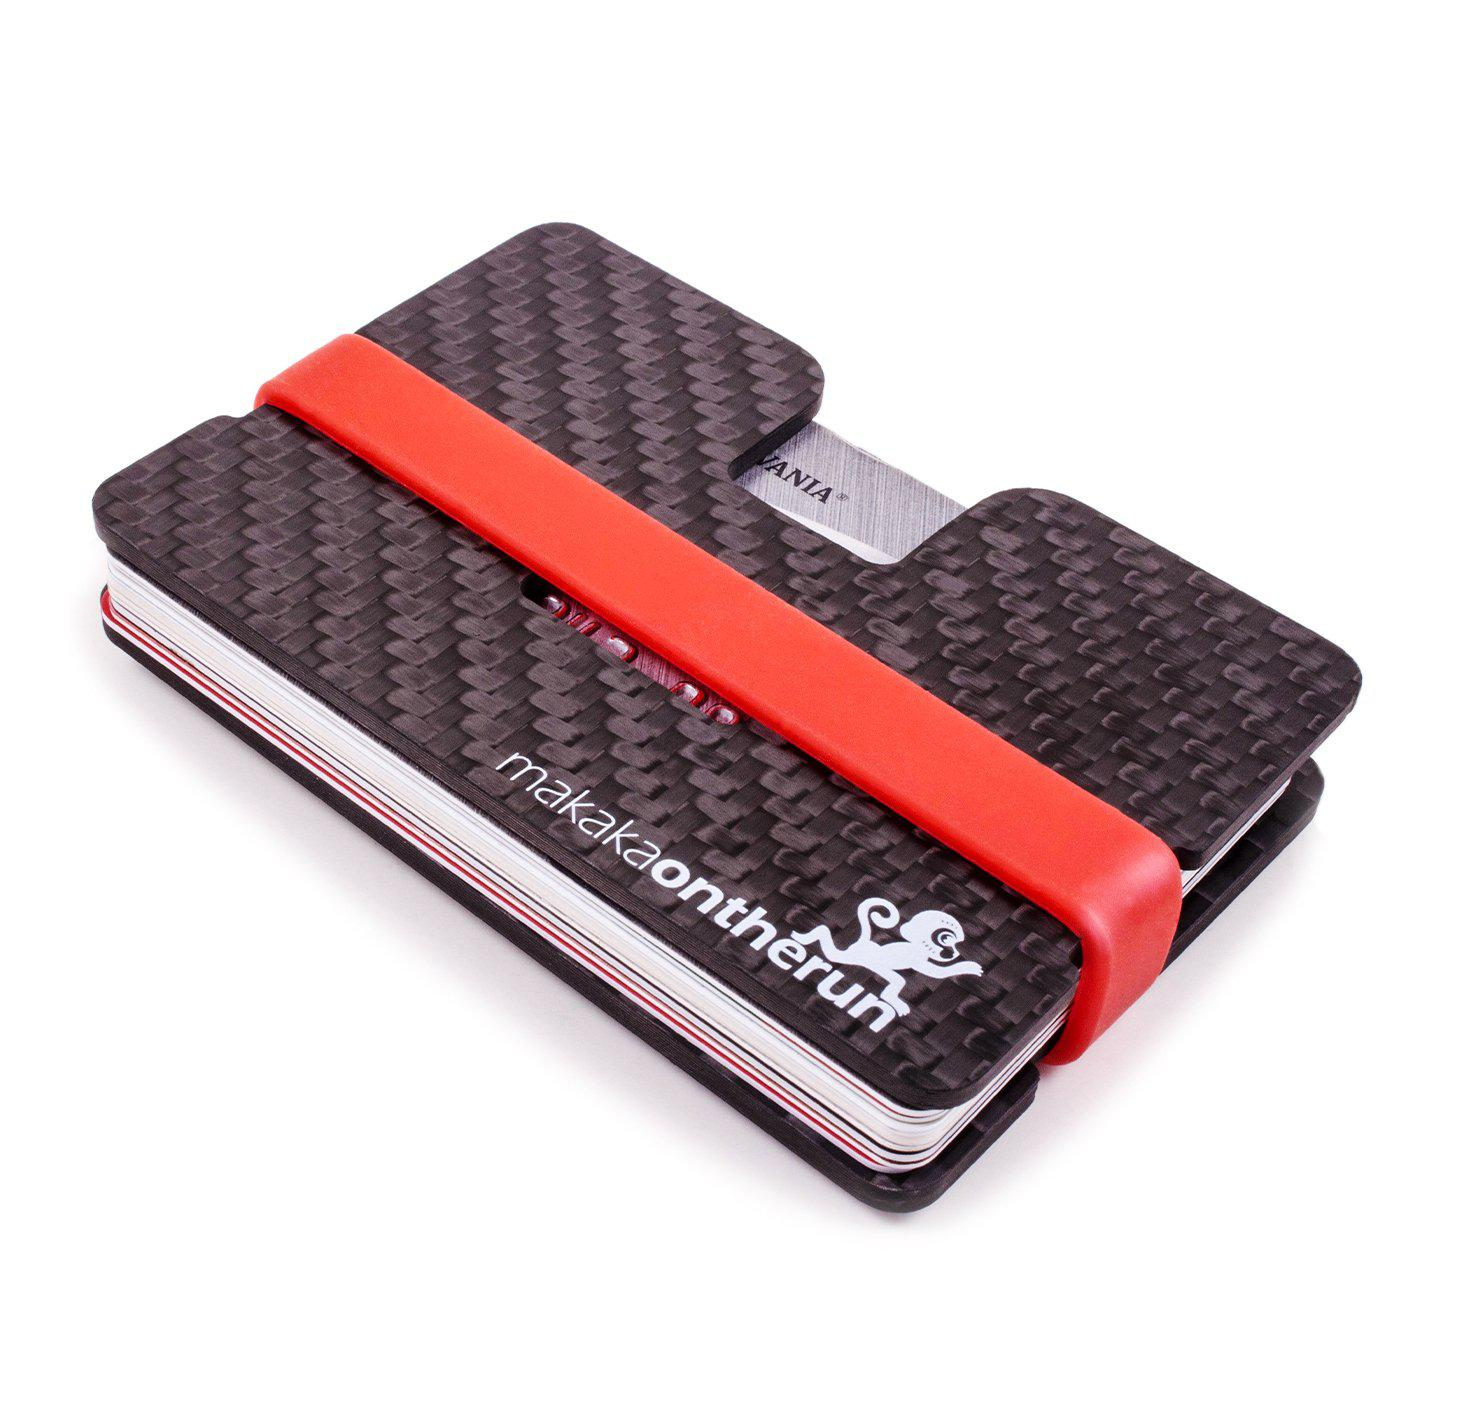 Carbon Slim Wallet | RFID-Blocking | Eingefrästes Münzfach - MakakaOnTheRun RFID NFC Blocker & Anti Spy Produkte